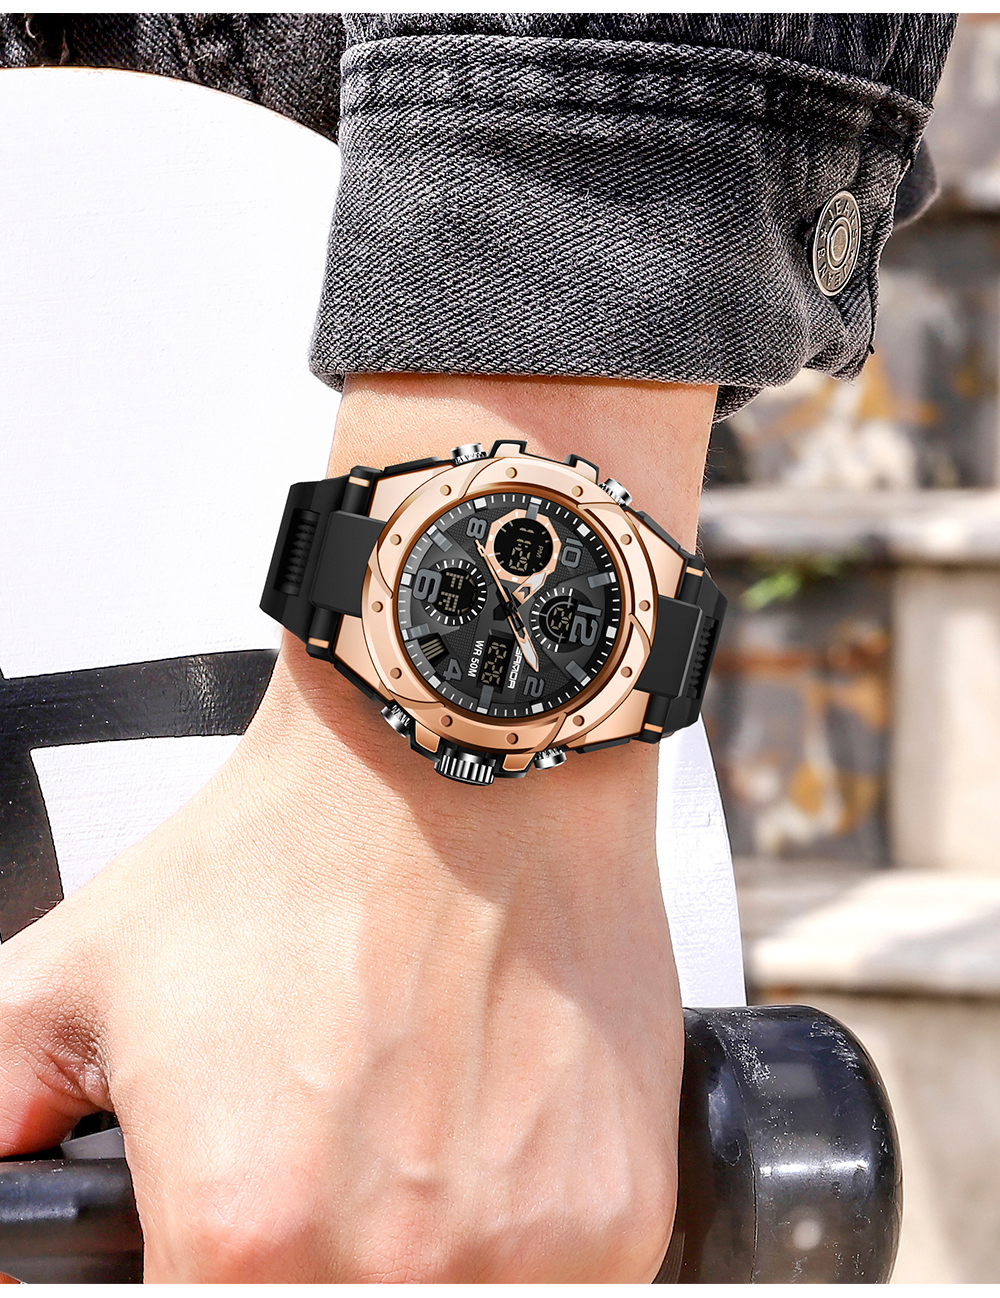 H60c9ca2417054b6f9e422978034a2f97i SANAD Top Brand Luxury Men's Military Sports Watches 5ATM Waterproof